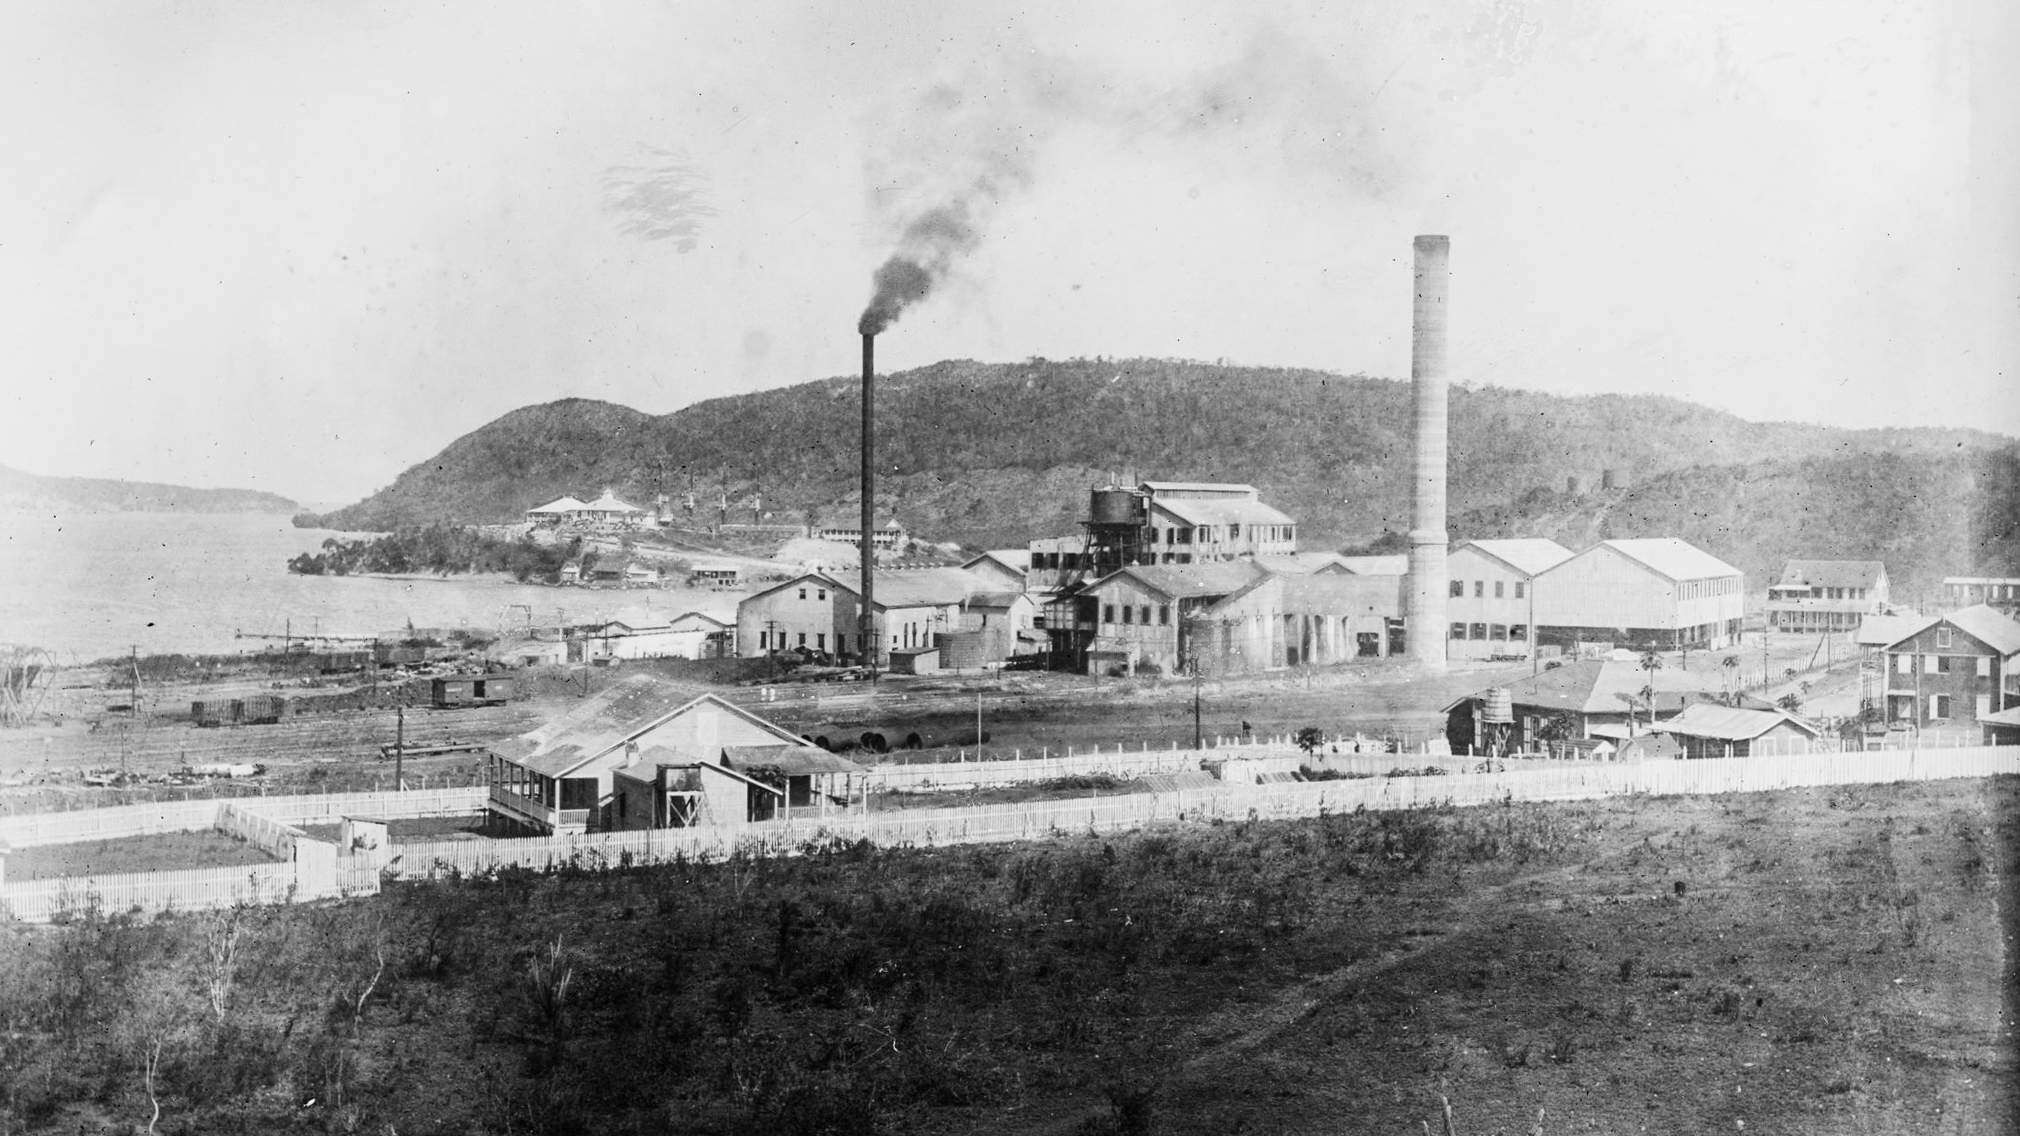 The growth of the Puerto Rican sugar industry began to falter in the 1910s due to the threat of free market in the U.S. after the passage of the Underwood-Simmons Act in 1916.